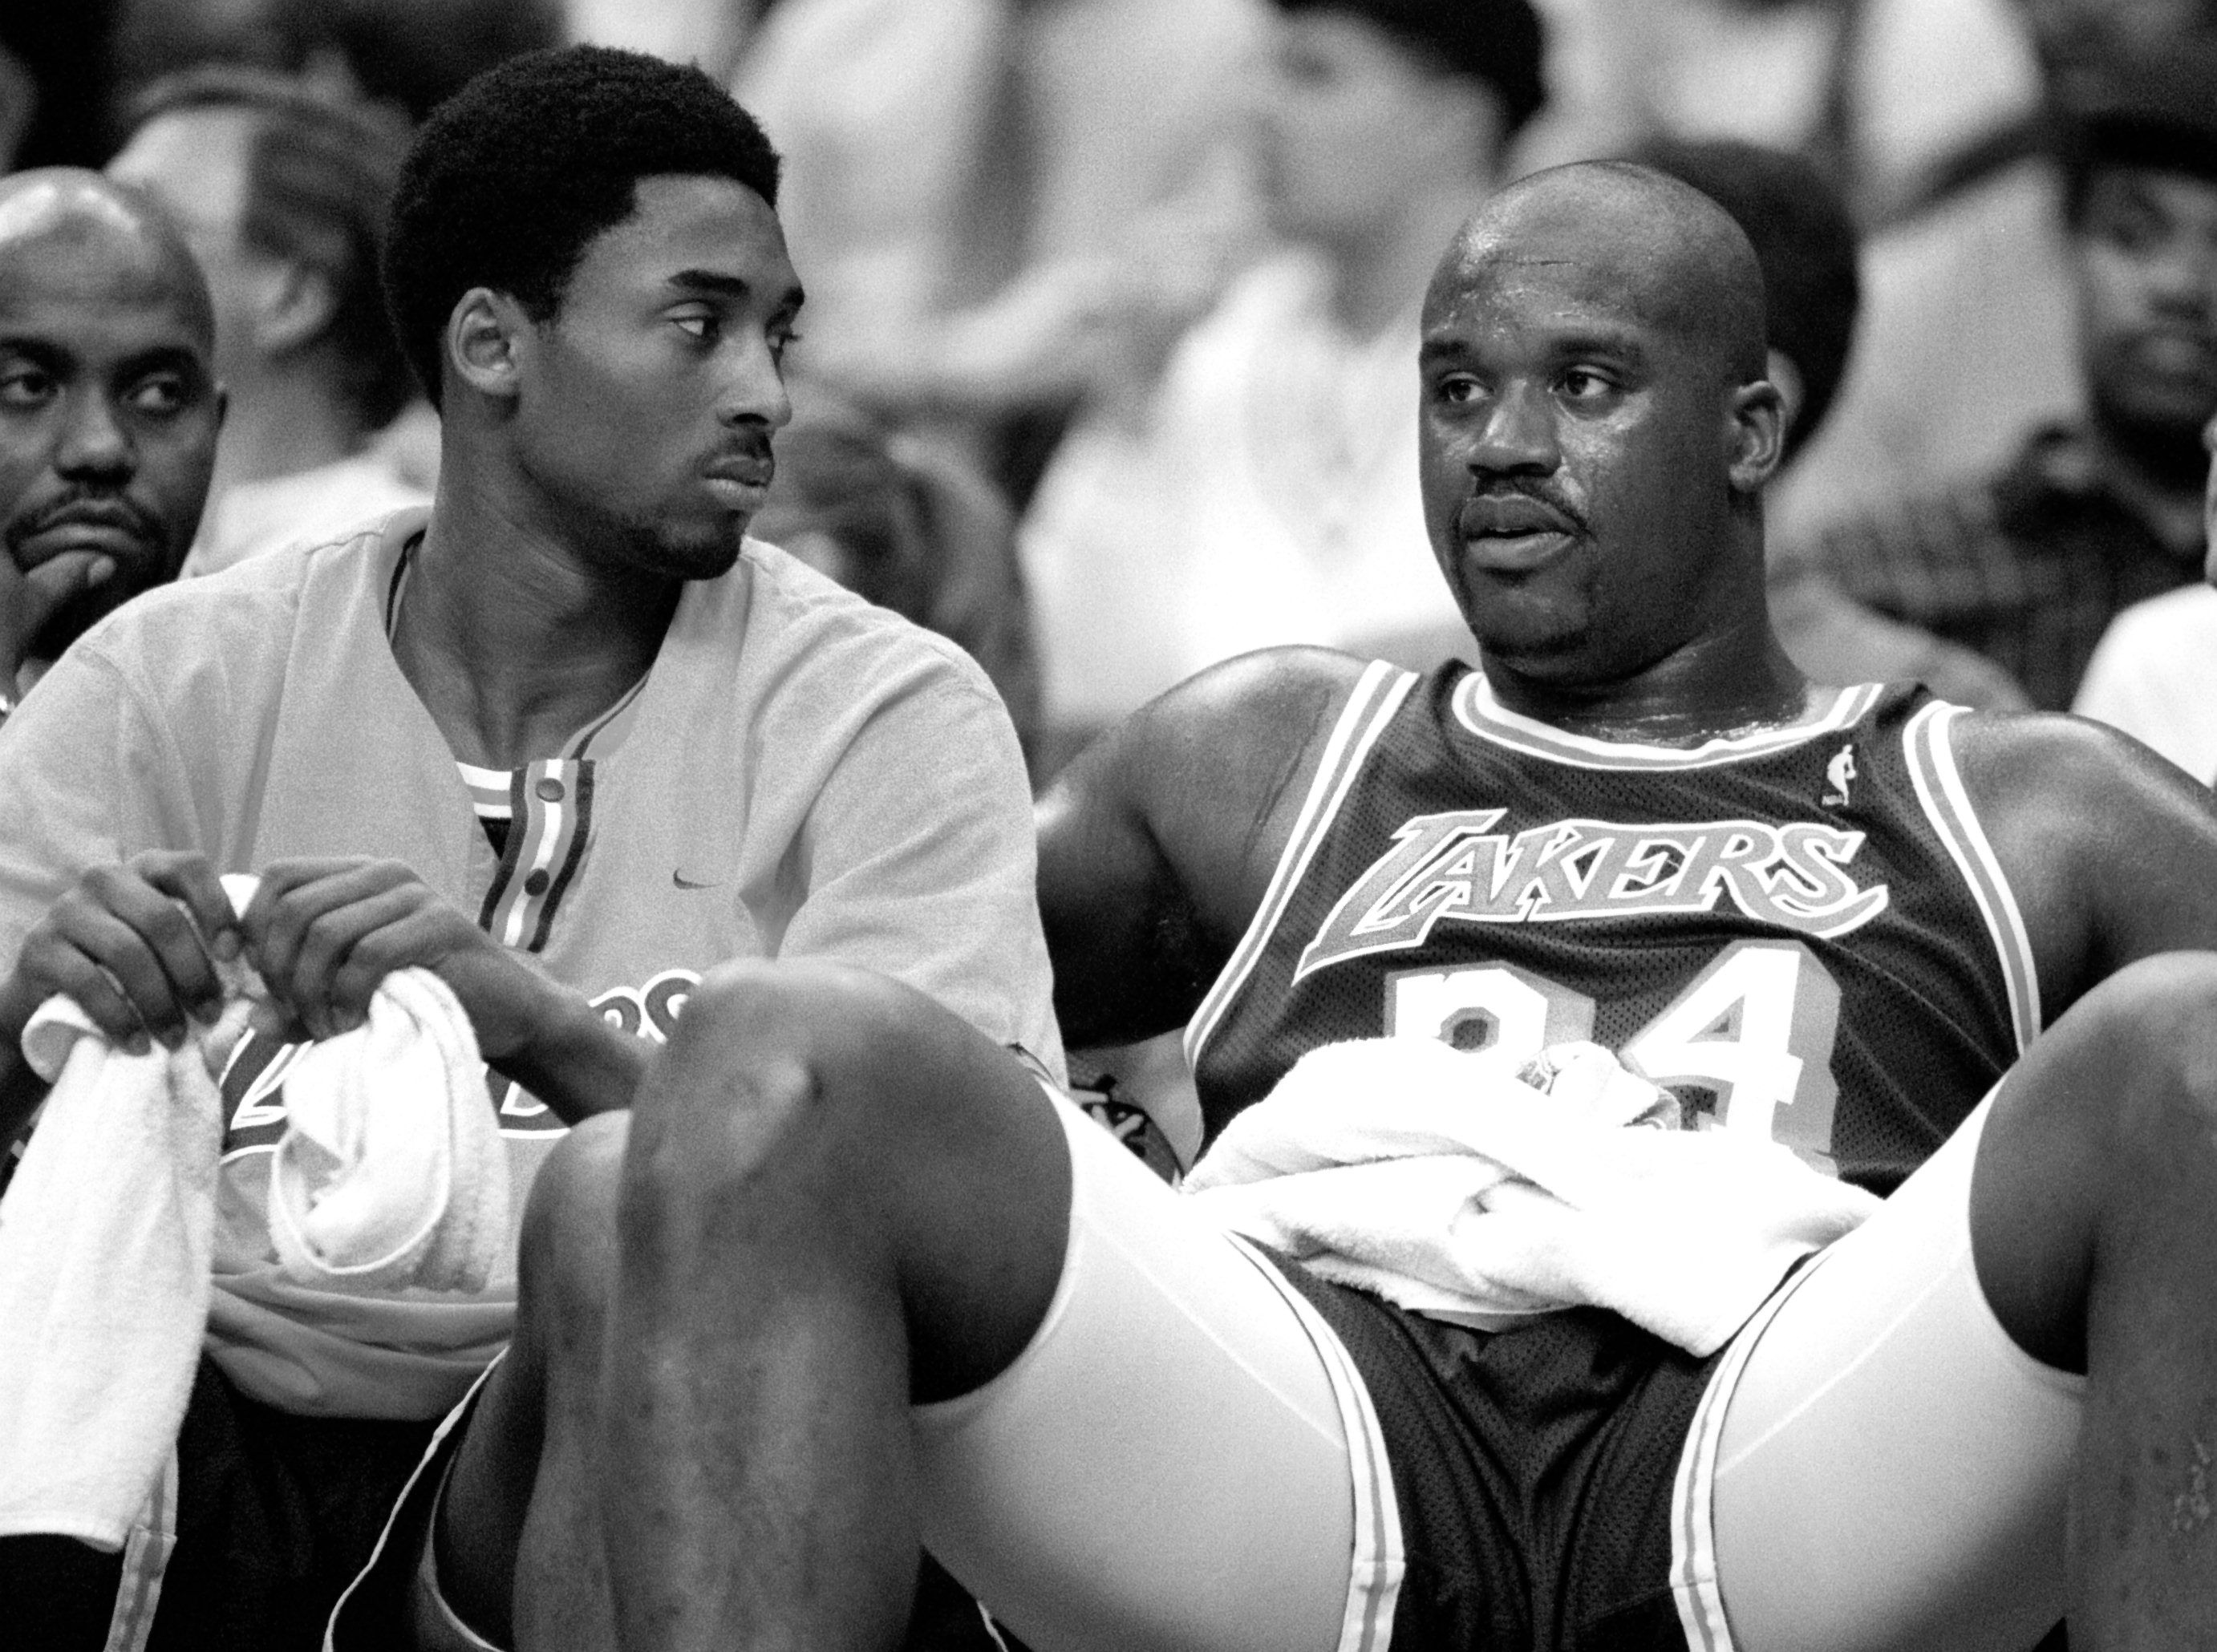 03/02/98 - MCI Center - Lakers' Kobie Bryant(L) listens to teammate Shaquille O'Neal as they sit on